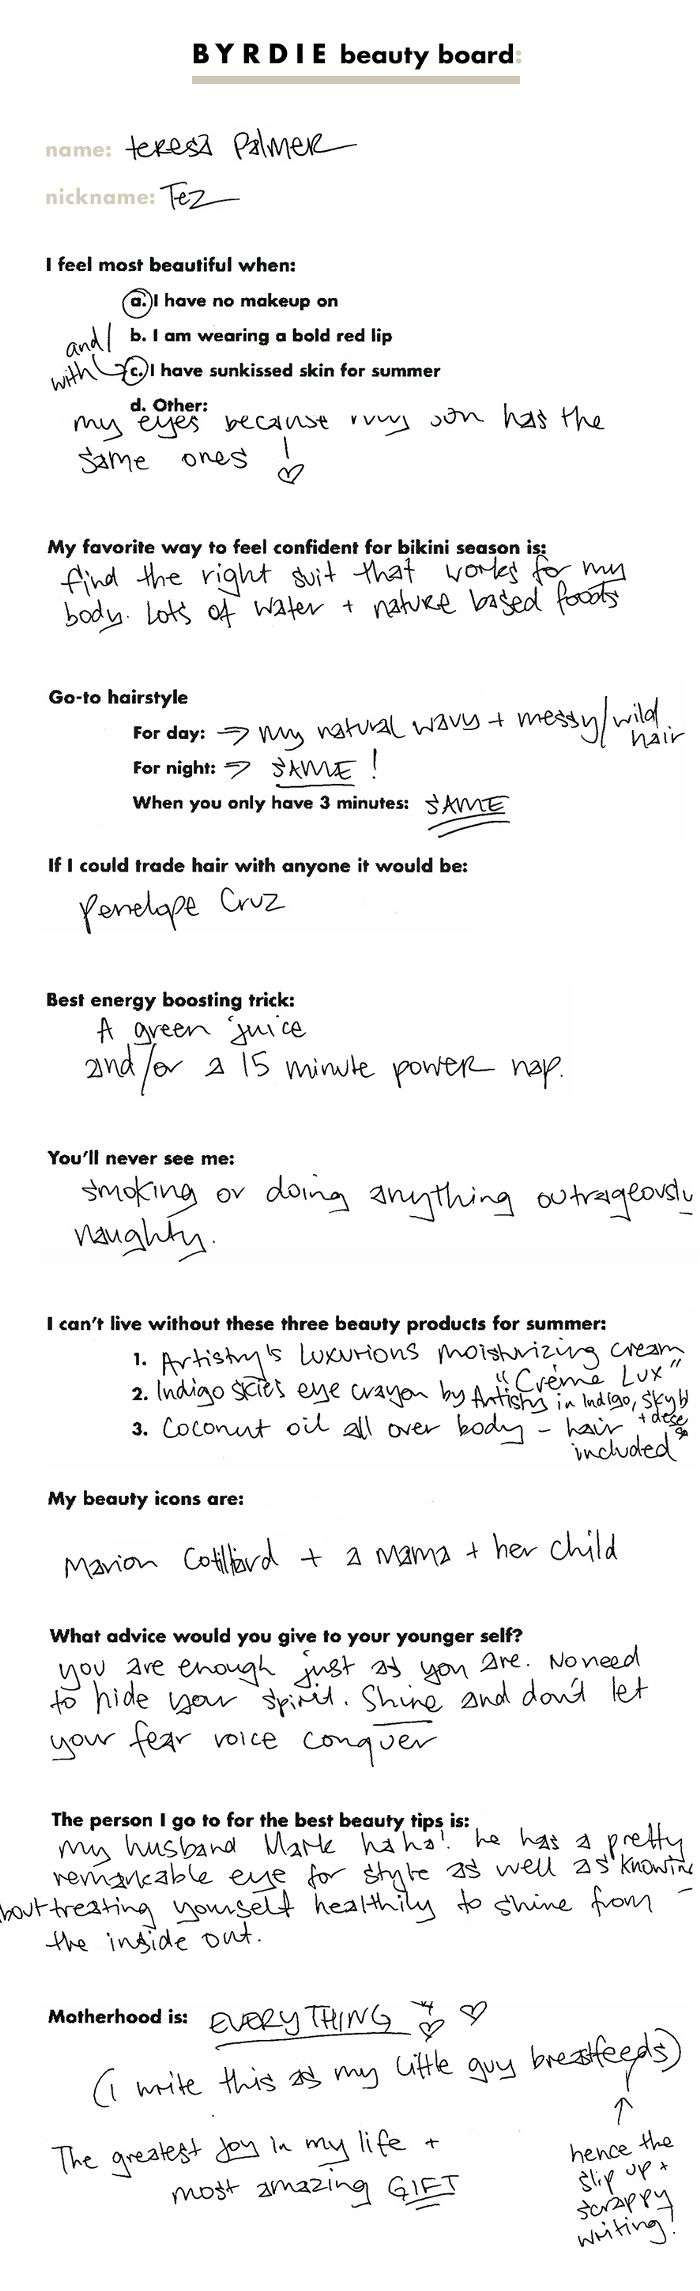 Teresa Palmer beauty board questionnaire filled out